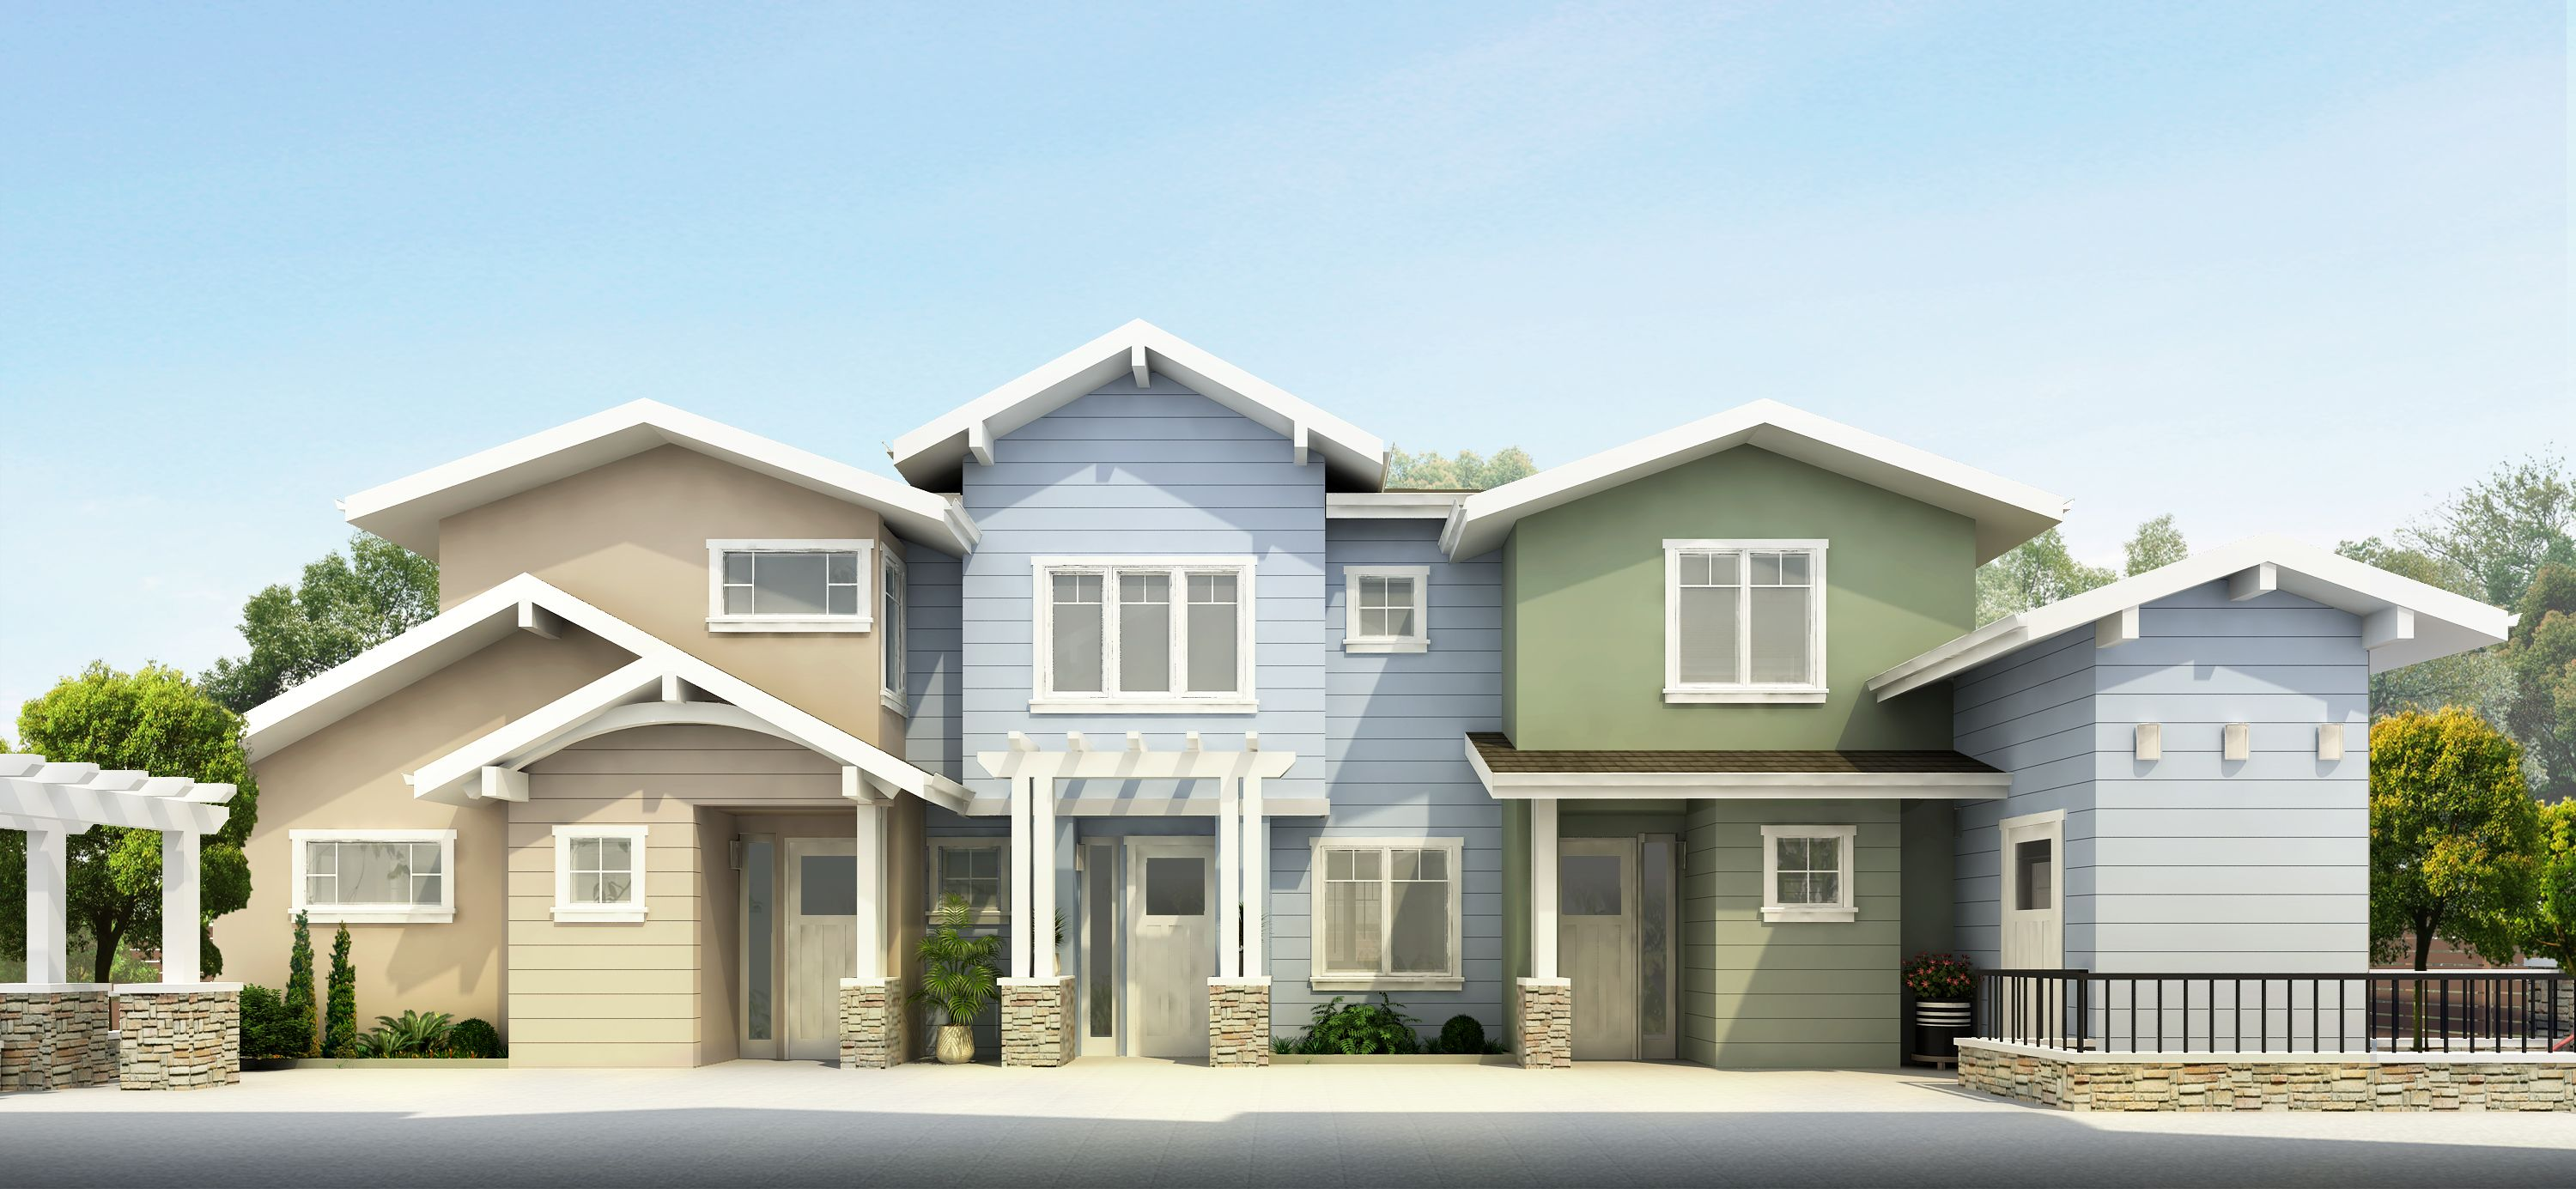 Exterior featured in the Unit 7 By Flynn Town Home Estates  in San Jose, CA